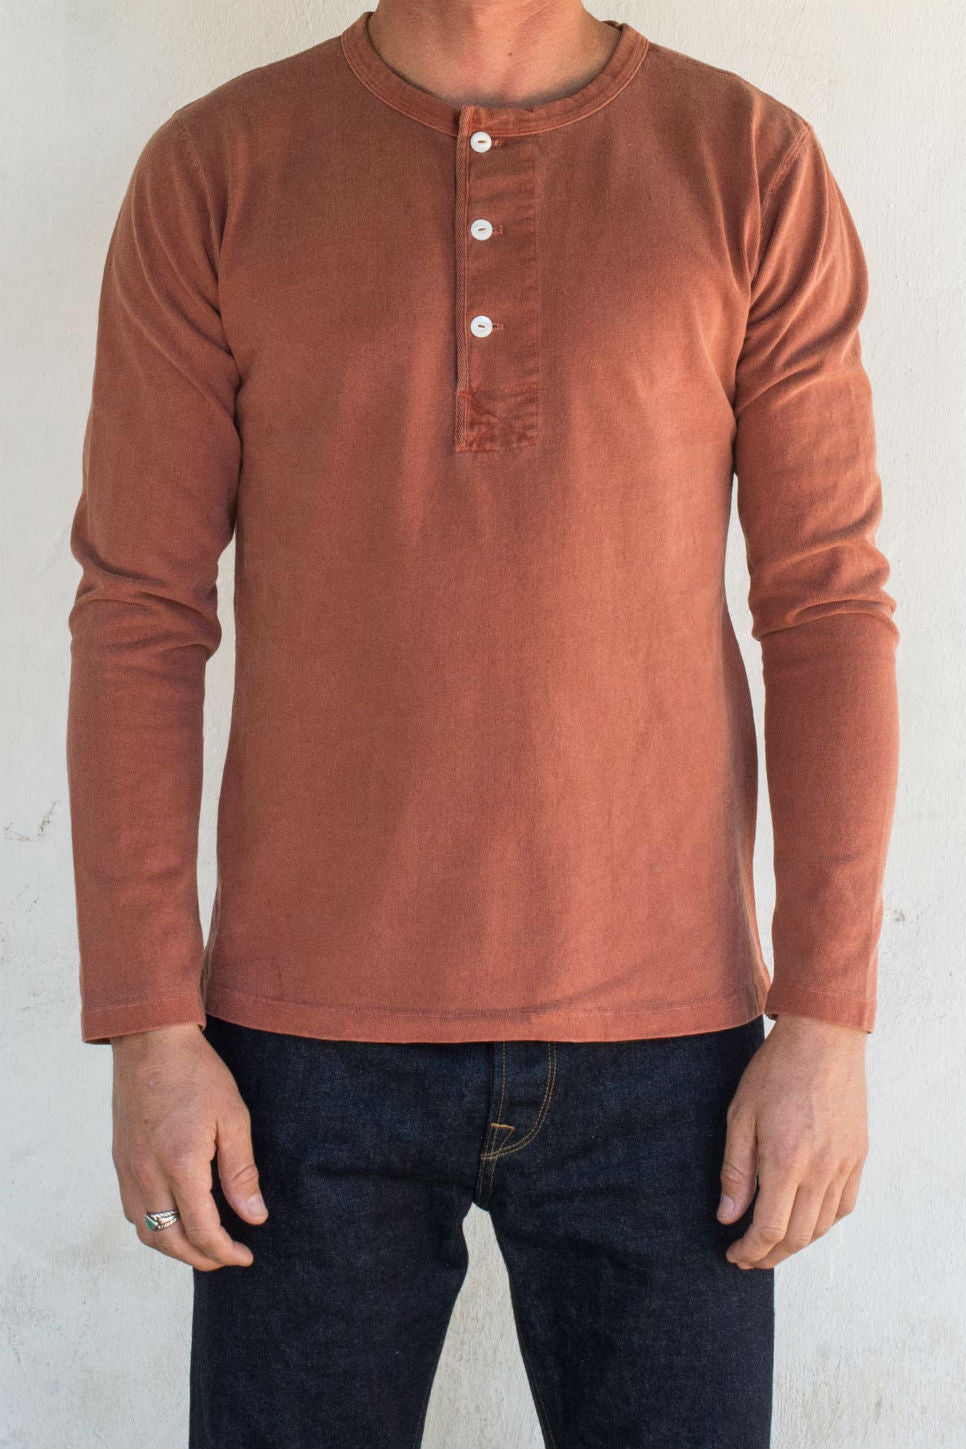 Freenote - 13oz Henley - Rust - Model